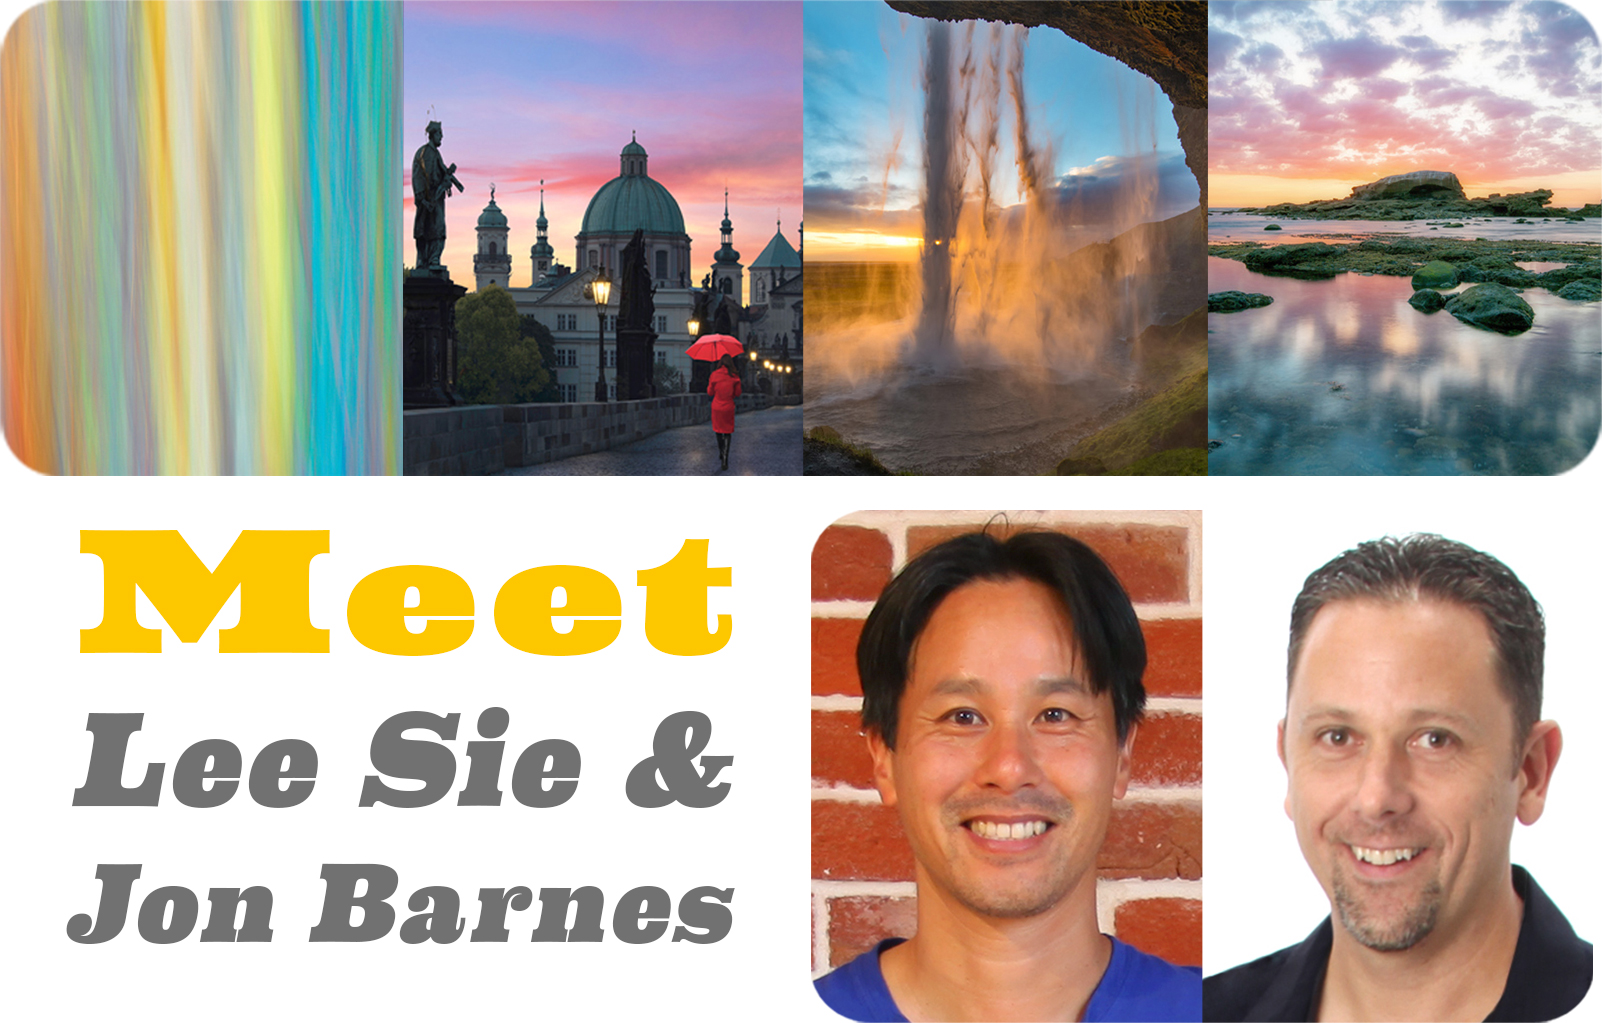 "Lee Sie & Jon Barnes – Here & There ""California Works"" Artist Talk and Reception"